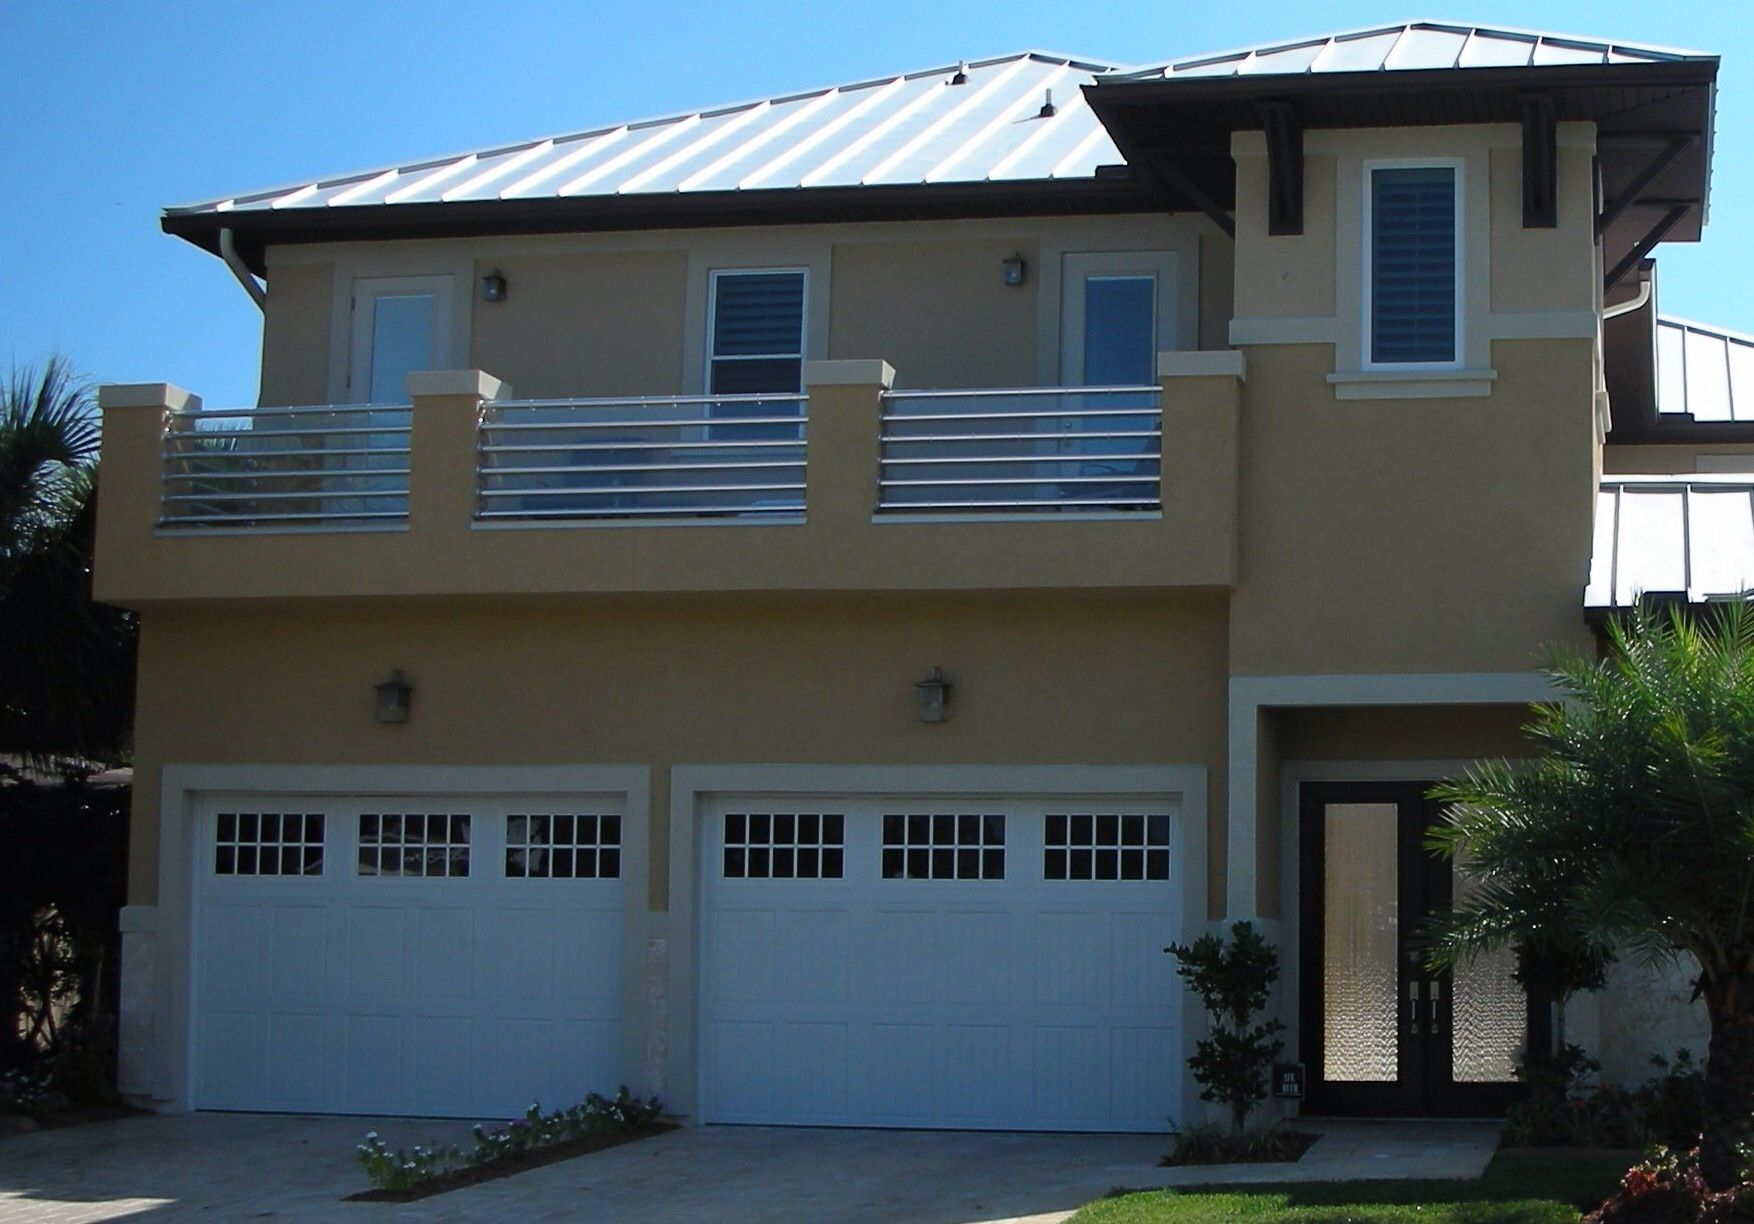 2 12 X 8 Custom Garage Doors Add Great Curb Appeal To This Jacksonville Beach Fl Home Custom Garage Doors Doors Garage Doors